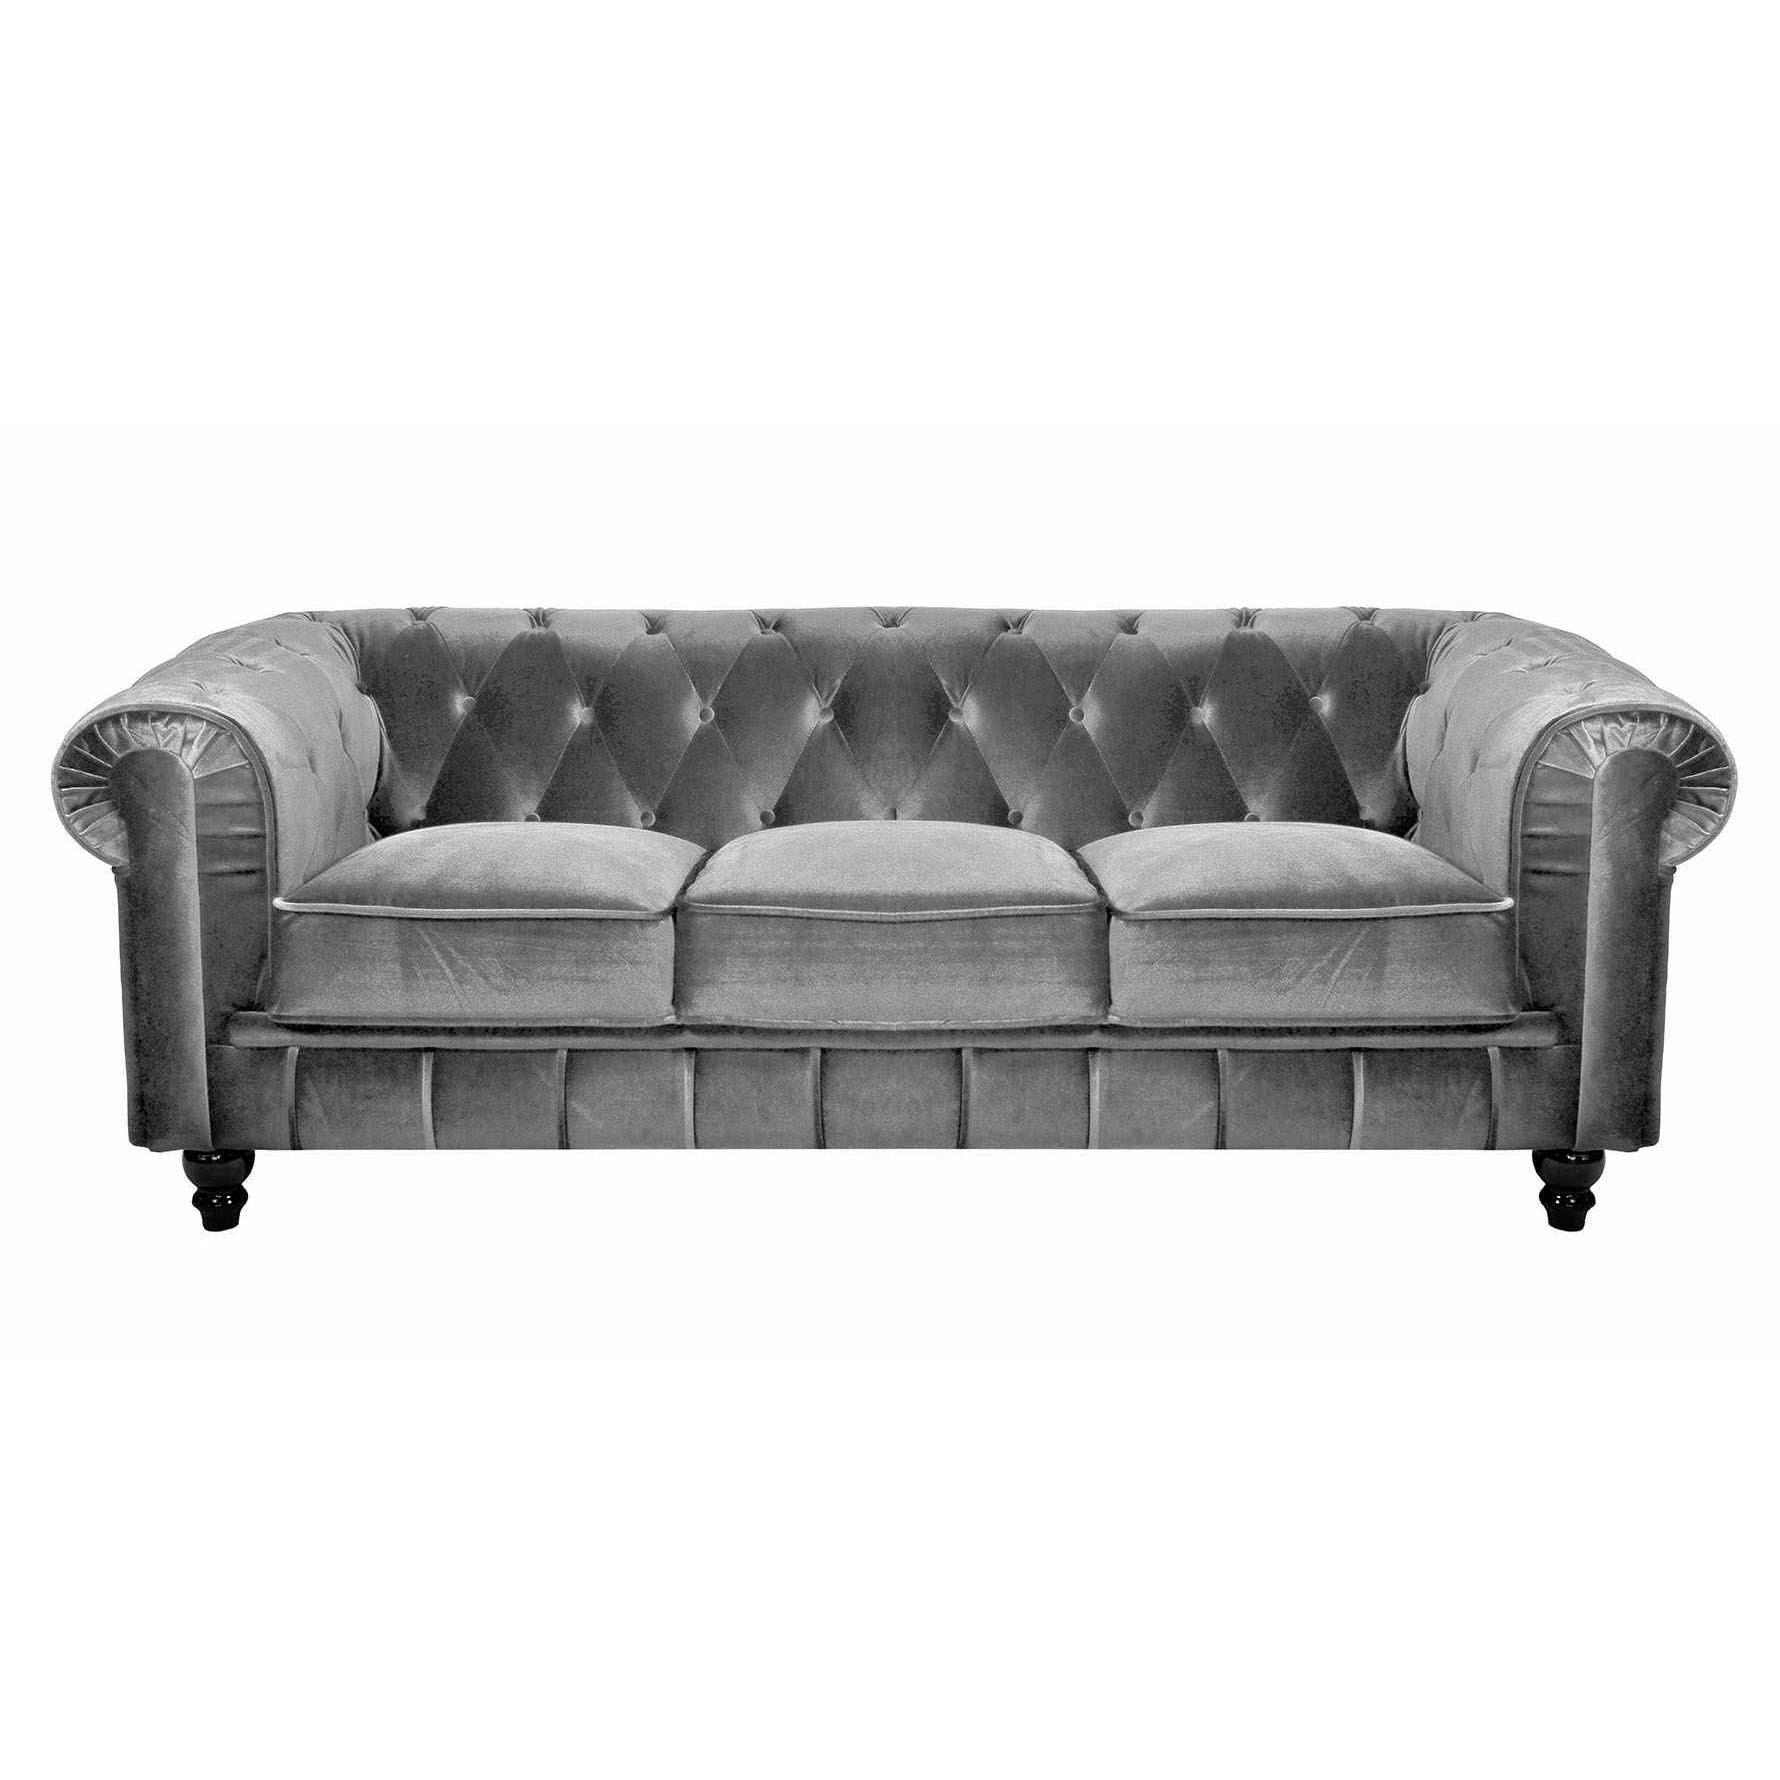 deco in paris canape 3 places velours gris chesterfield can chester 3p velours gris. Black Bedroom Furniture Sets. Home Design Ideas